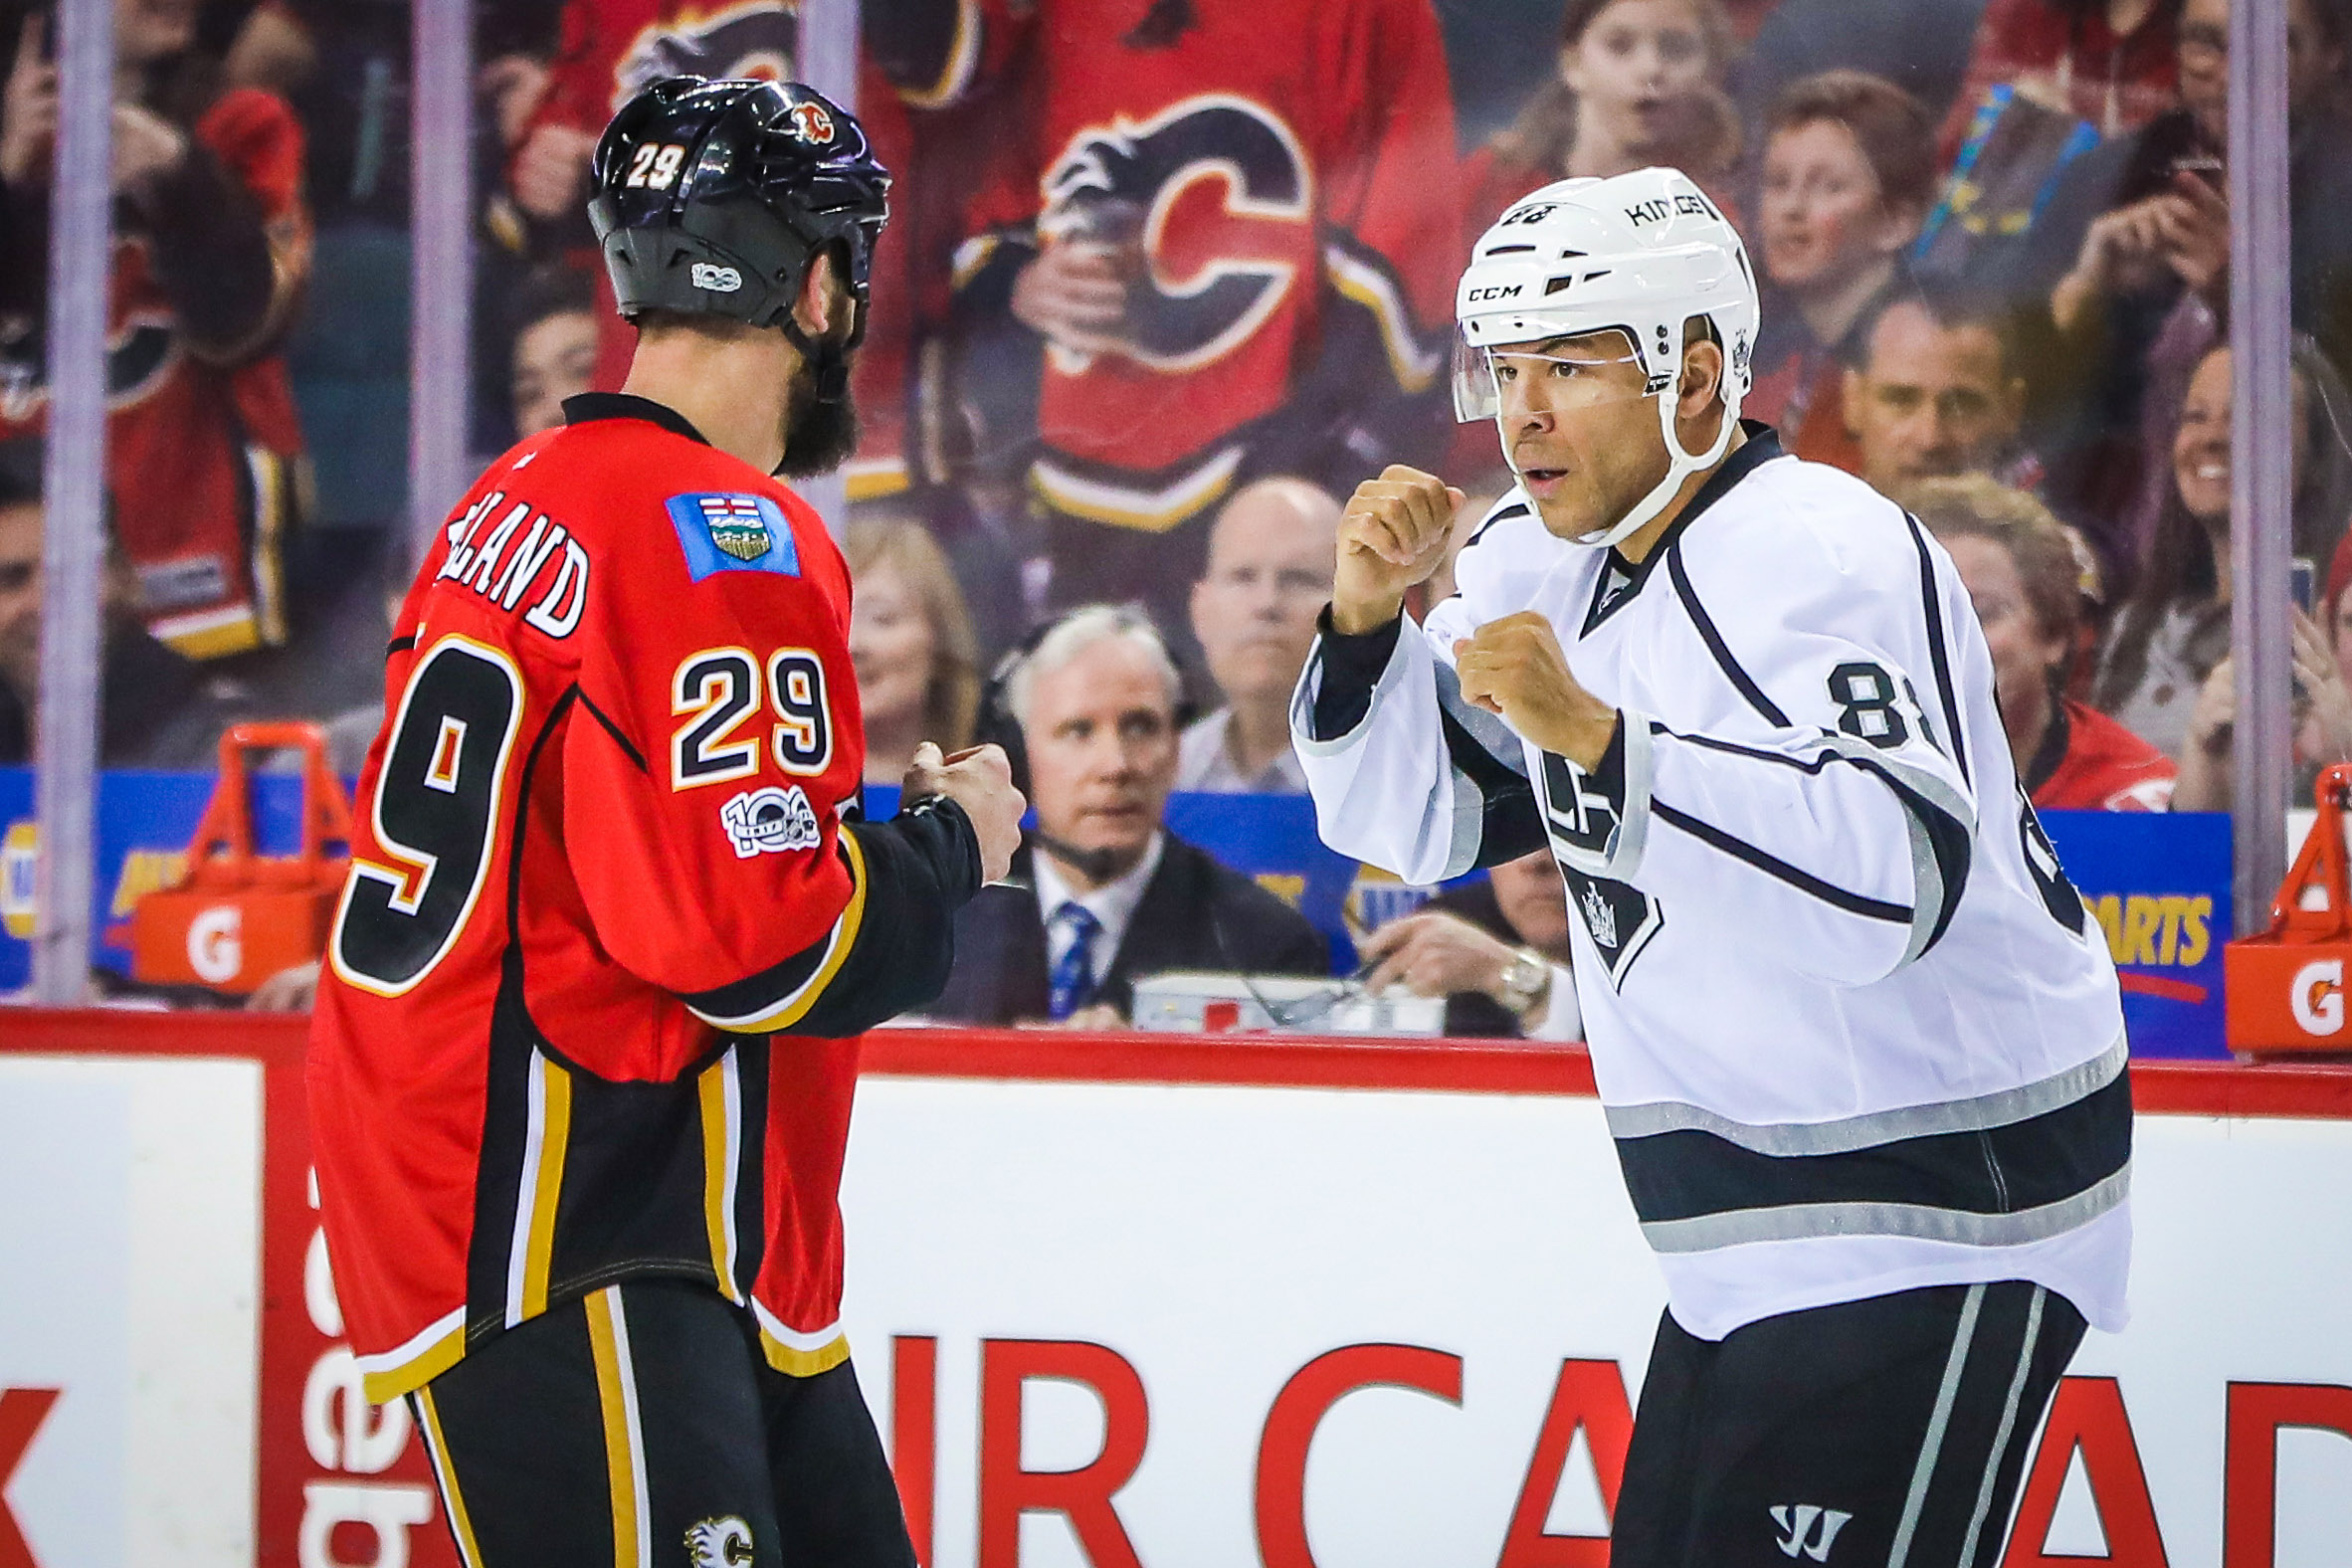 9980030-nhl-los-angeles-kings-at-calgary-flames